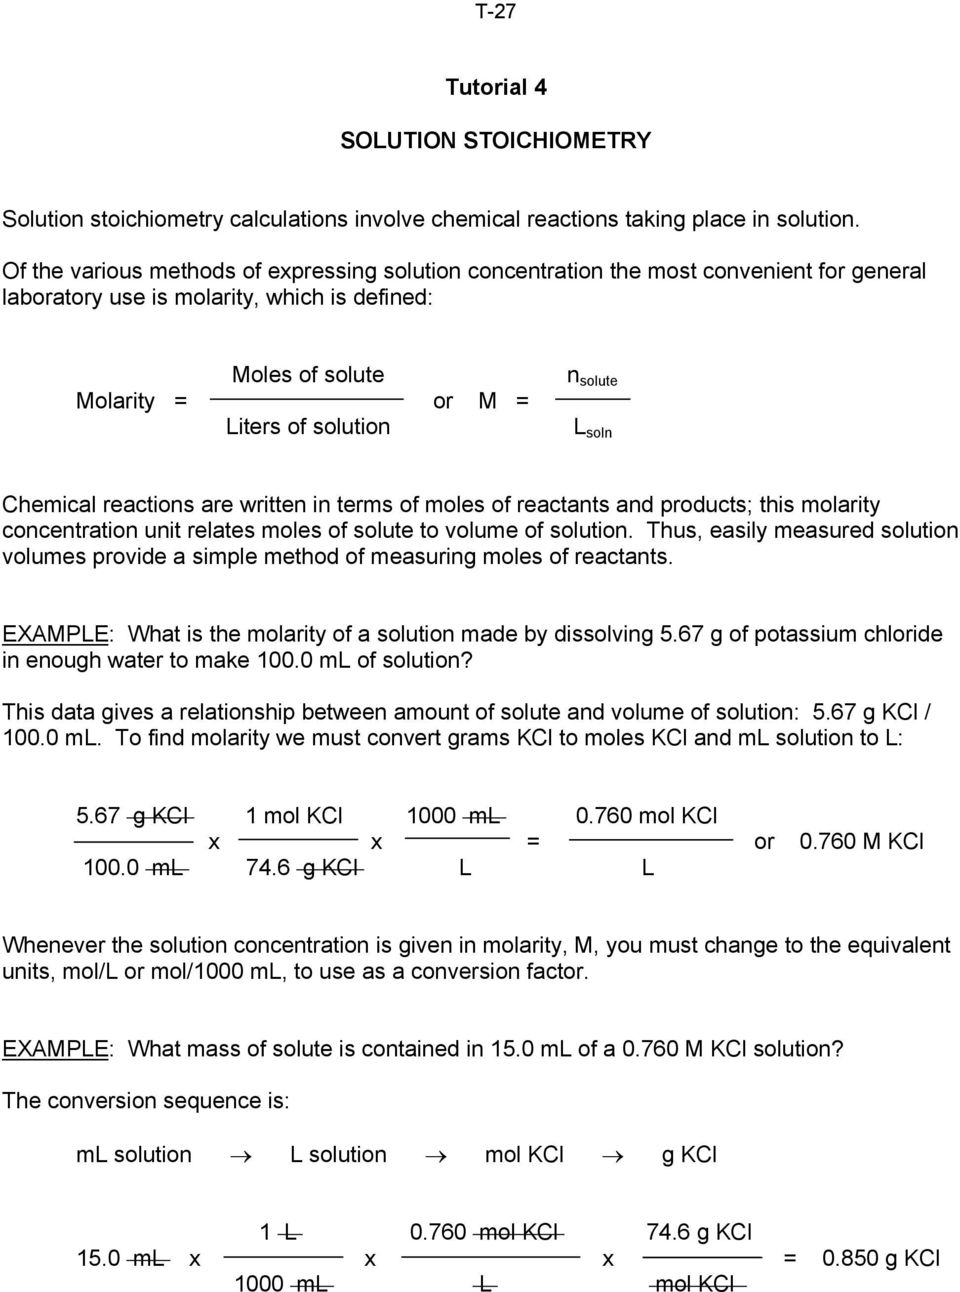 Worksheets Solution Stoichiometry Worksheet tutorial 4 solution stoichiometry l soln chemical reactions are written in terms of moles reactants and products this